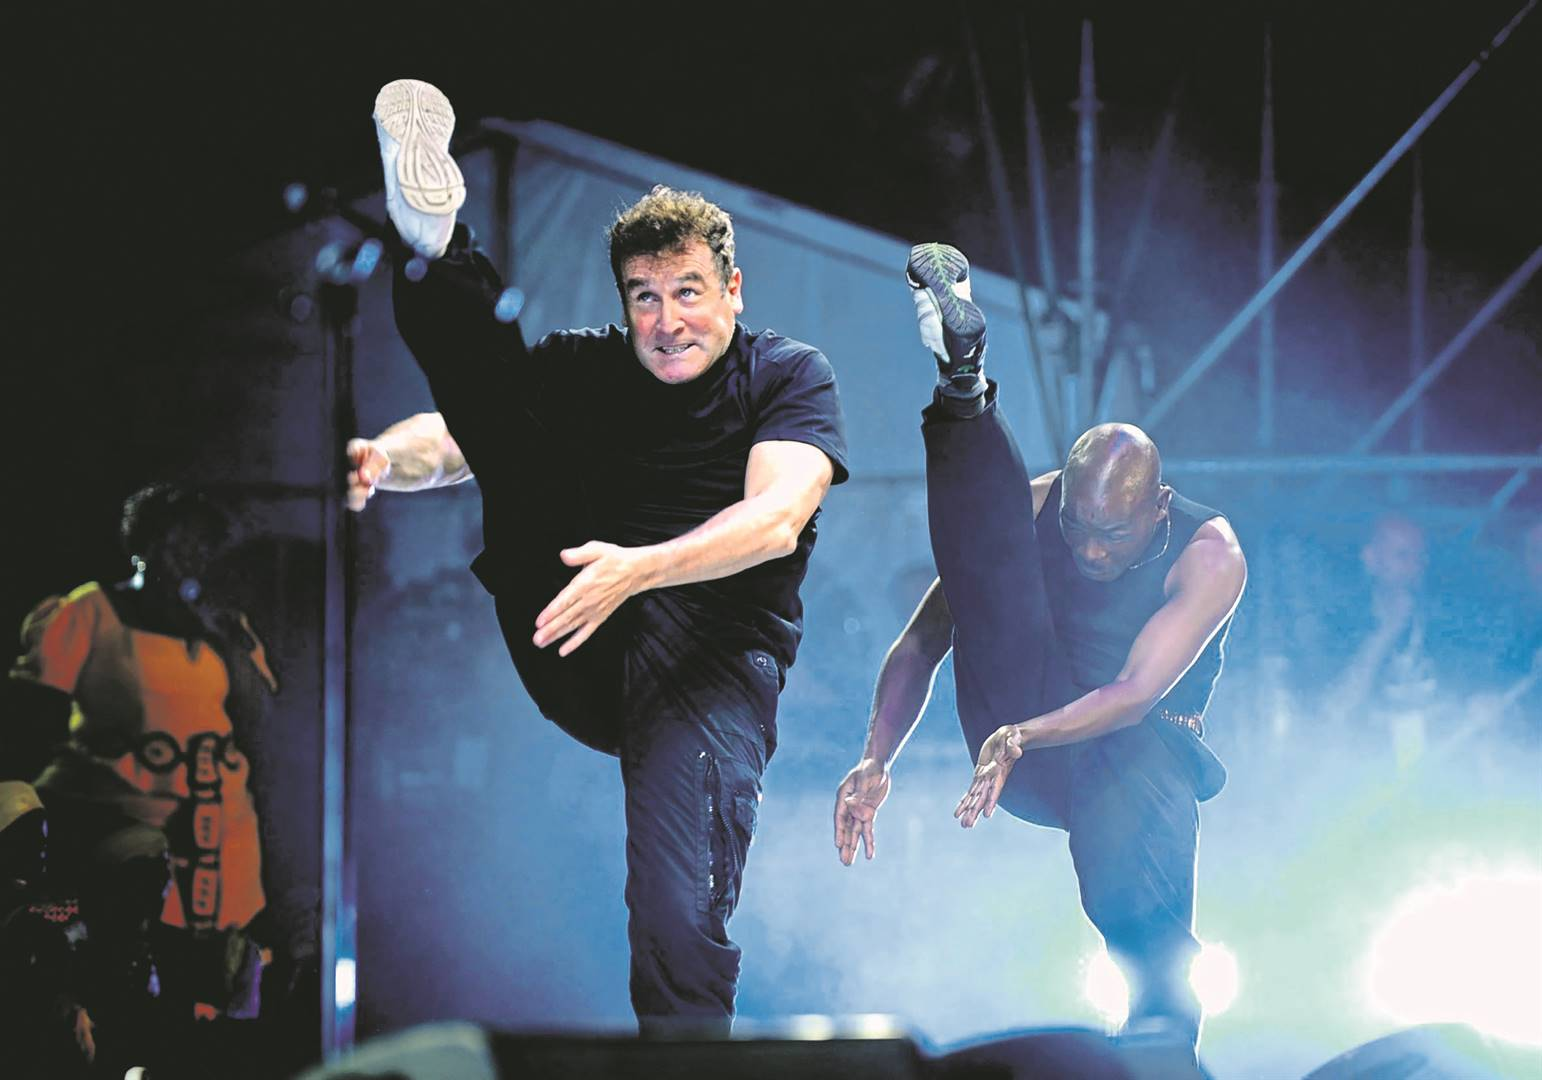 Beneath a copper sun the late musician Johnny Clegg. Photo: gallo images / sunday world / tsheko kabasia and Ebet Roberts / Redferns